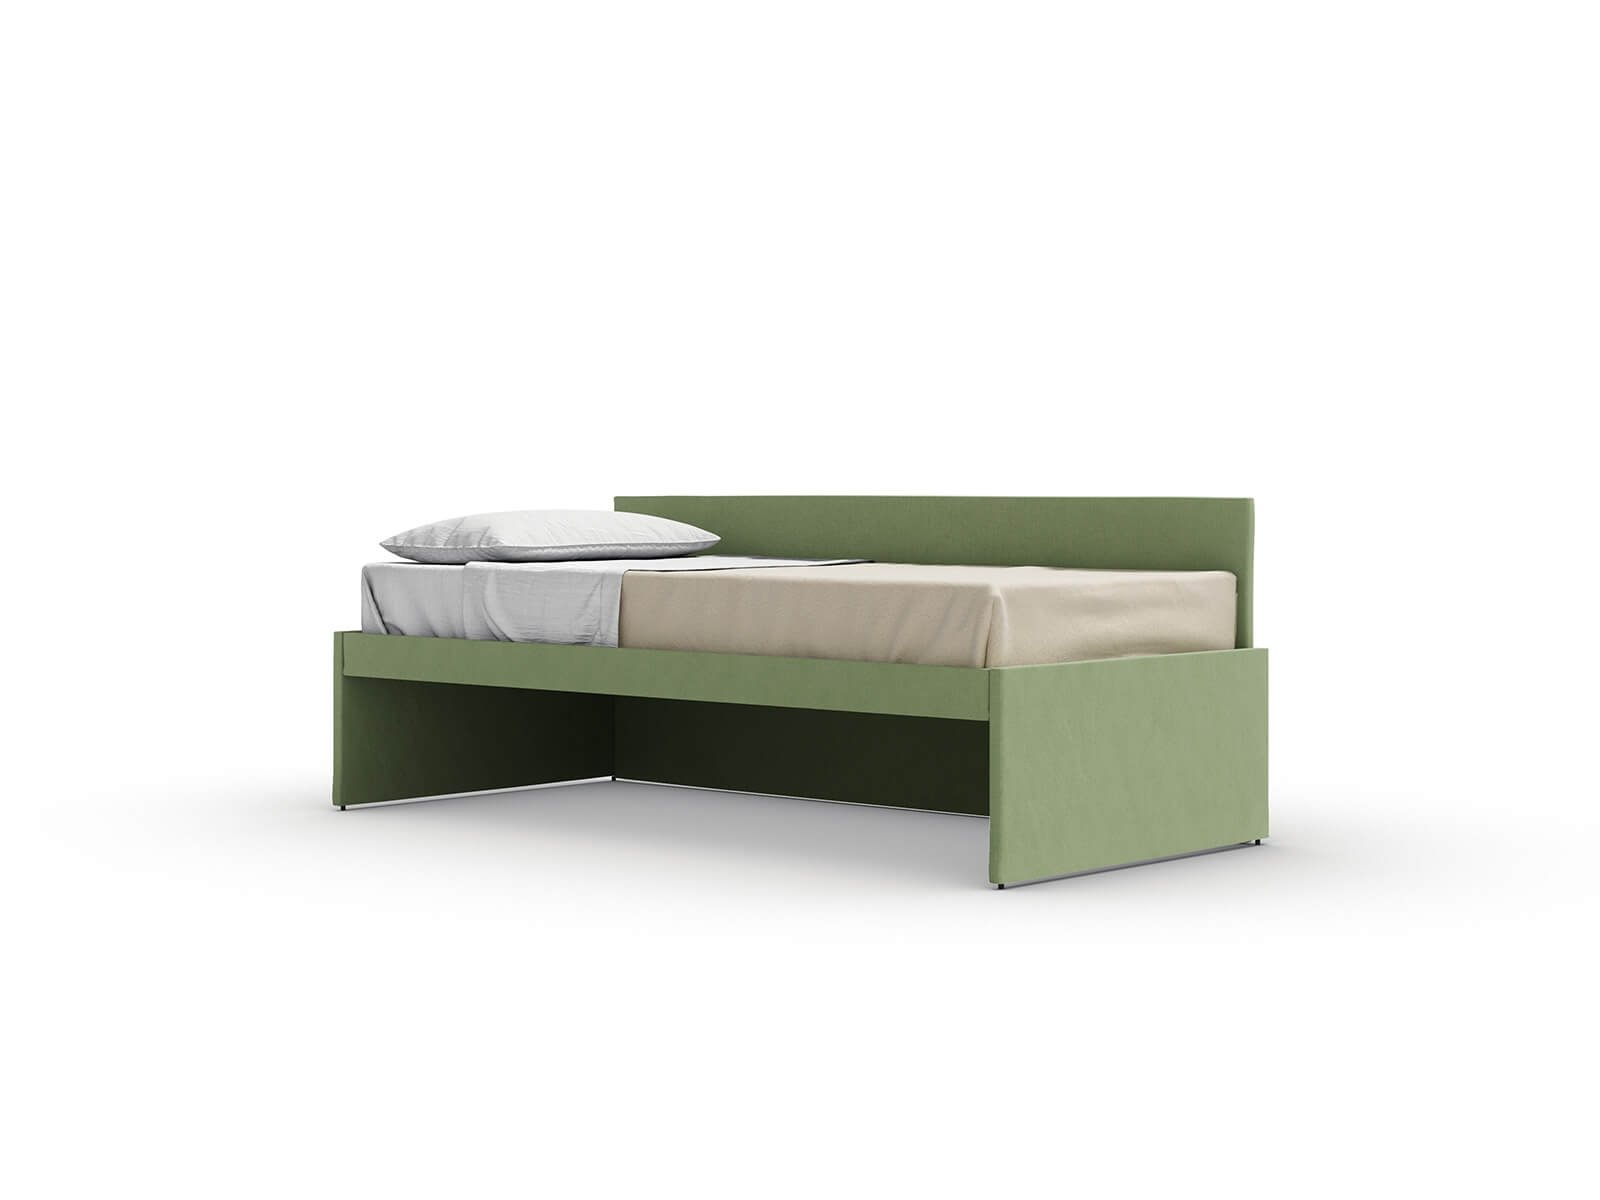 Whippy sofa bed